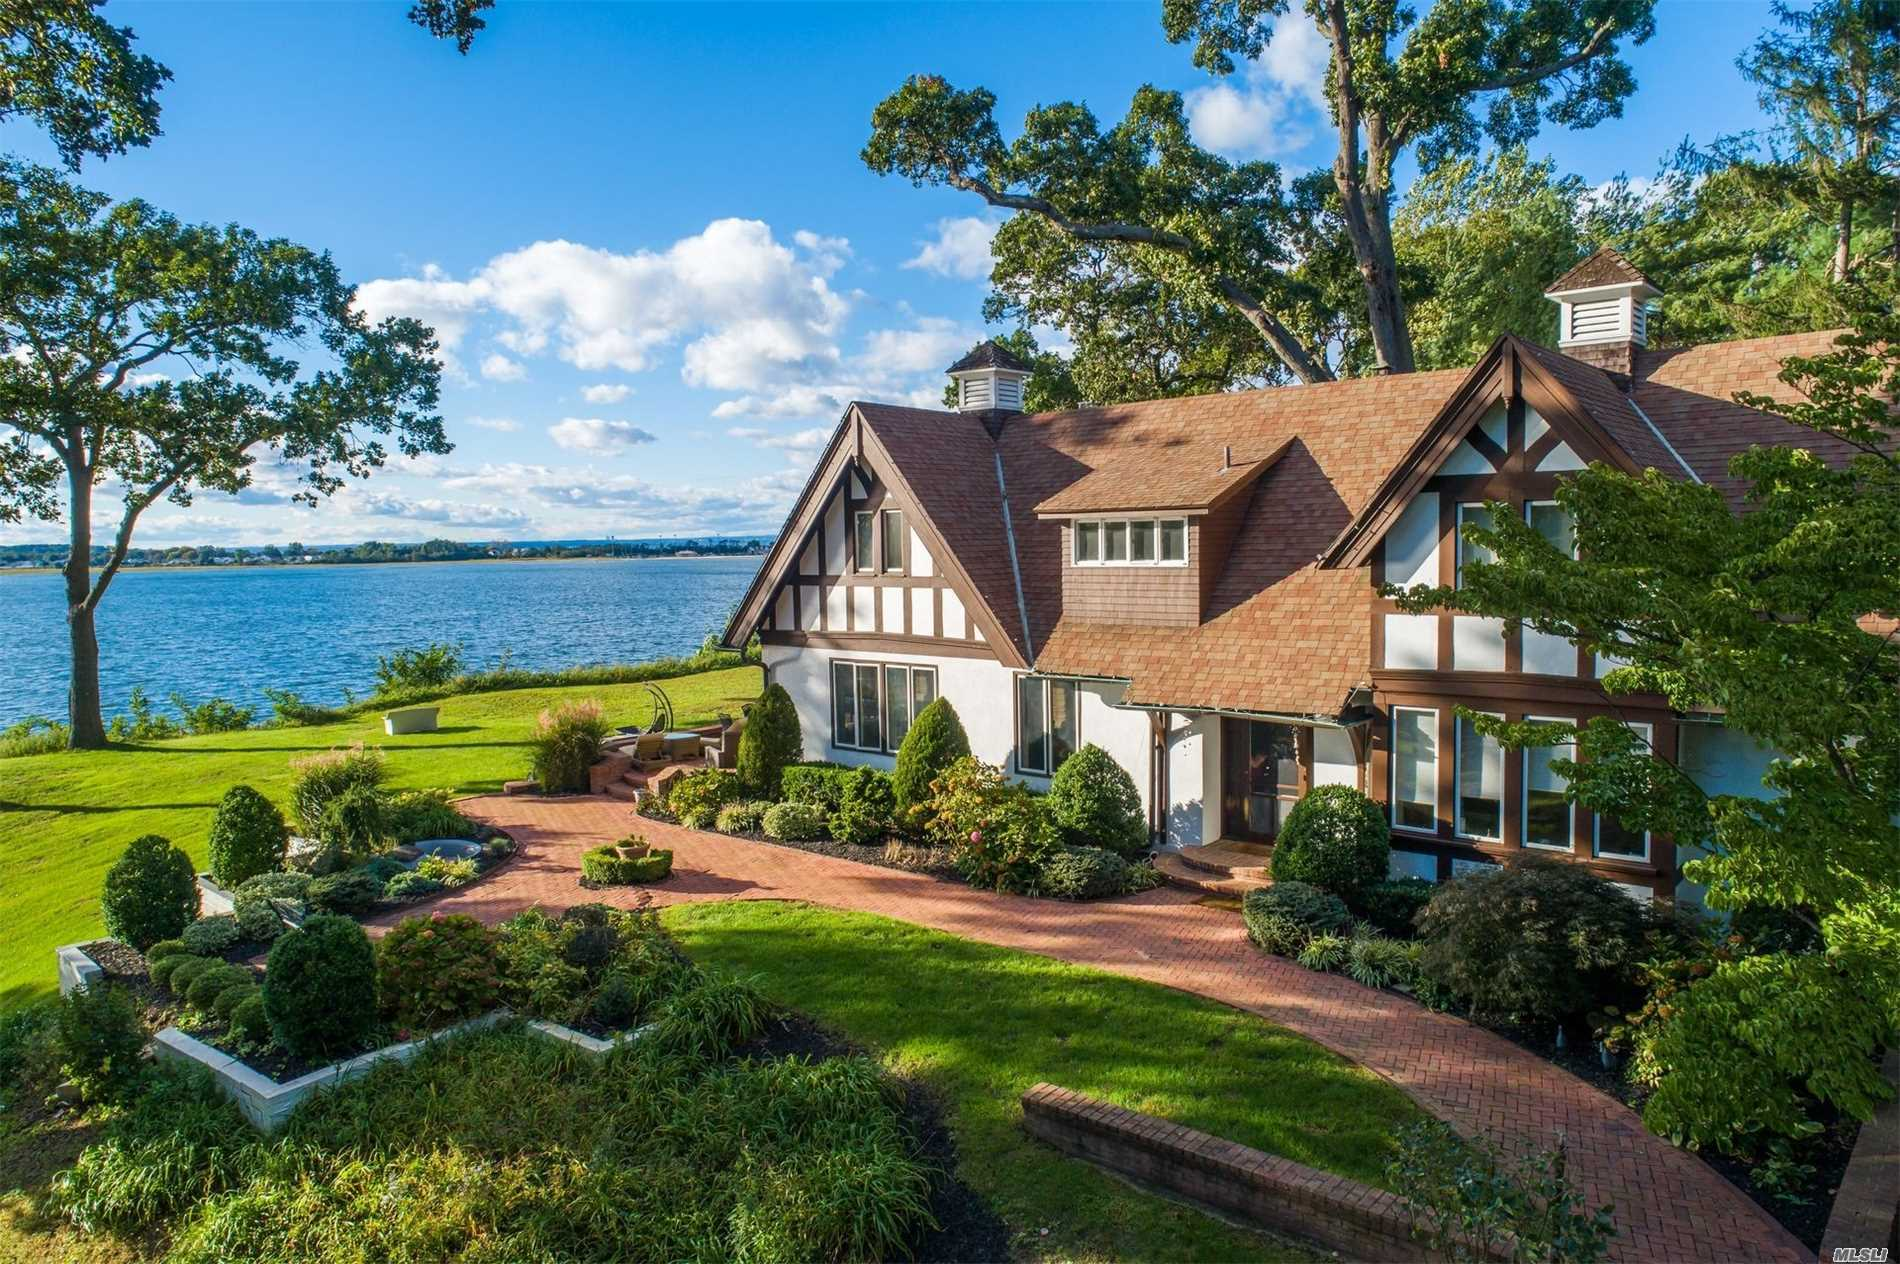 Watch The Boats Sail By From Your Own Patio. Absolutely Gorgeous Views Overlooking Oyster Bay Harbour. Custom Designed Landscaping Surround This Beautiful Tudor On 4 Acres. Formal Living Room With Fireplace, Formal Dining Room, Eat In Kitchen. Full Basement. 2 Bed/2 Full Bath Plus 1 Bedroom Cottage. 3 Car Detached Garage.